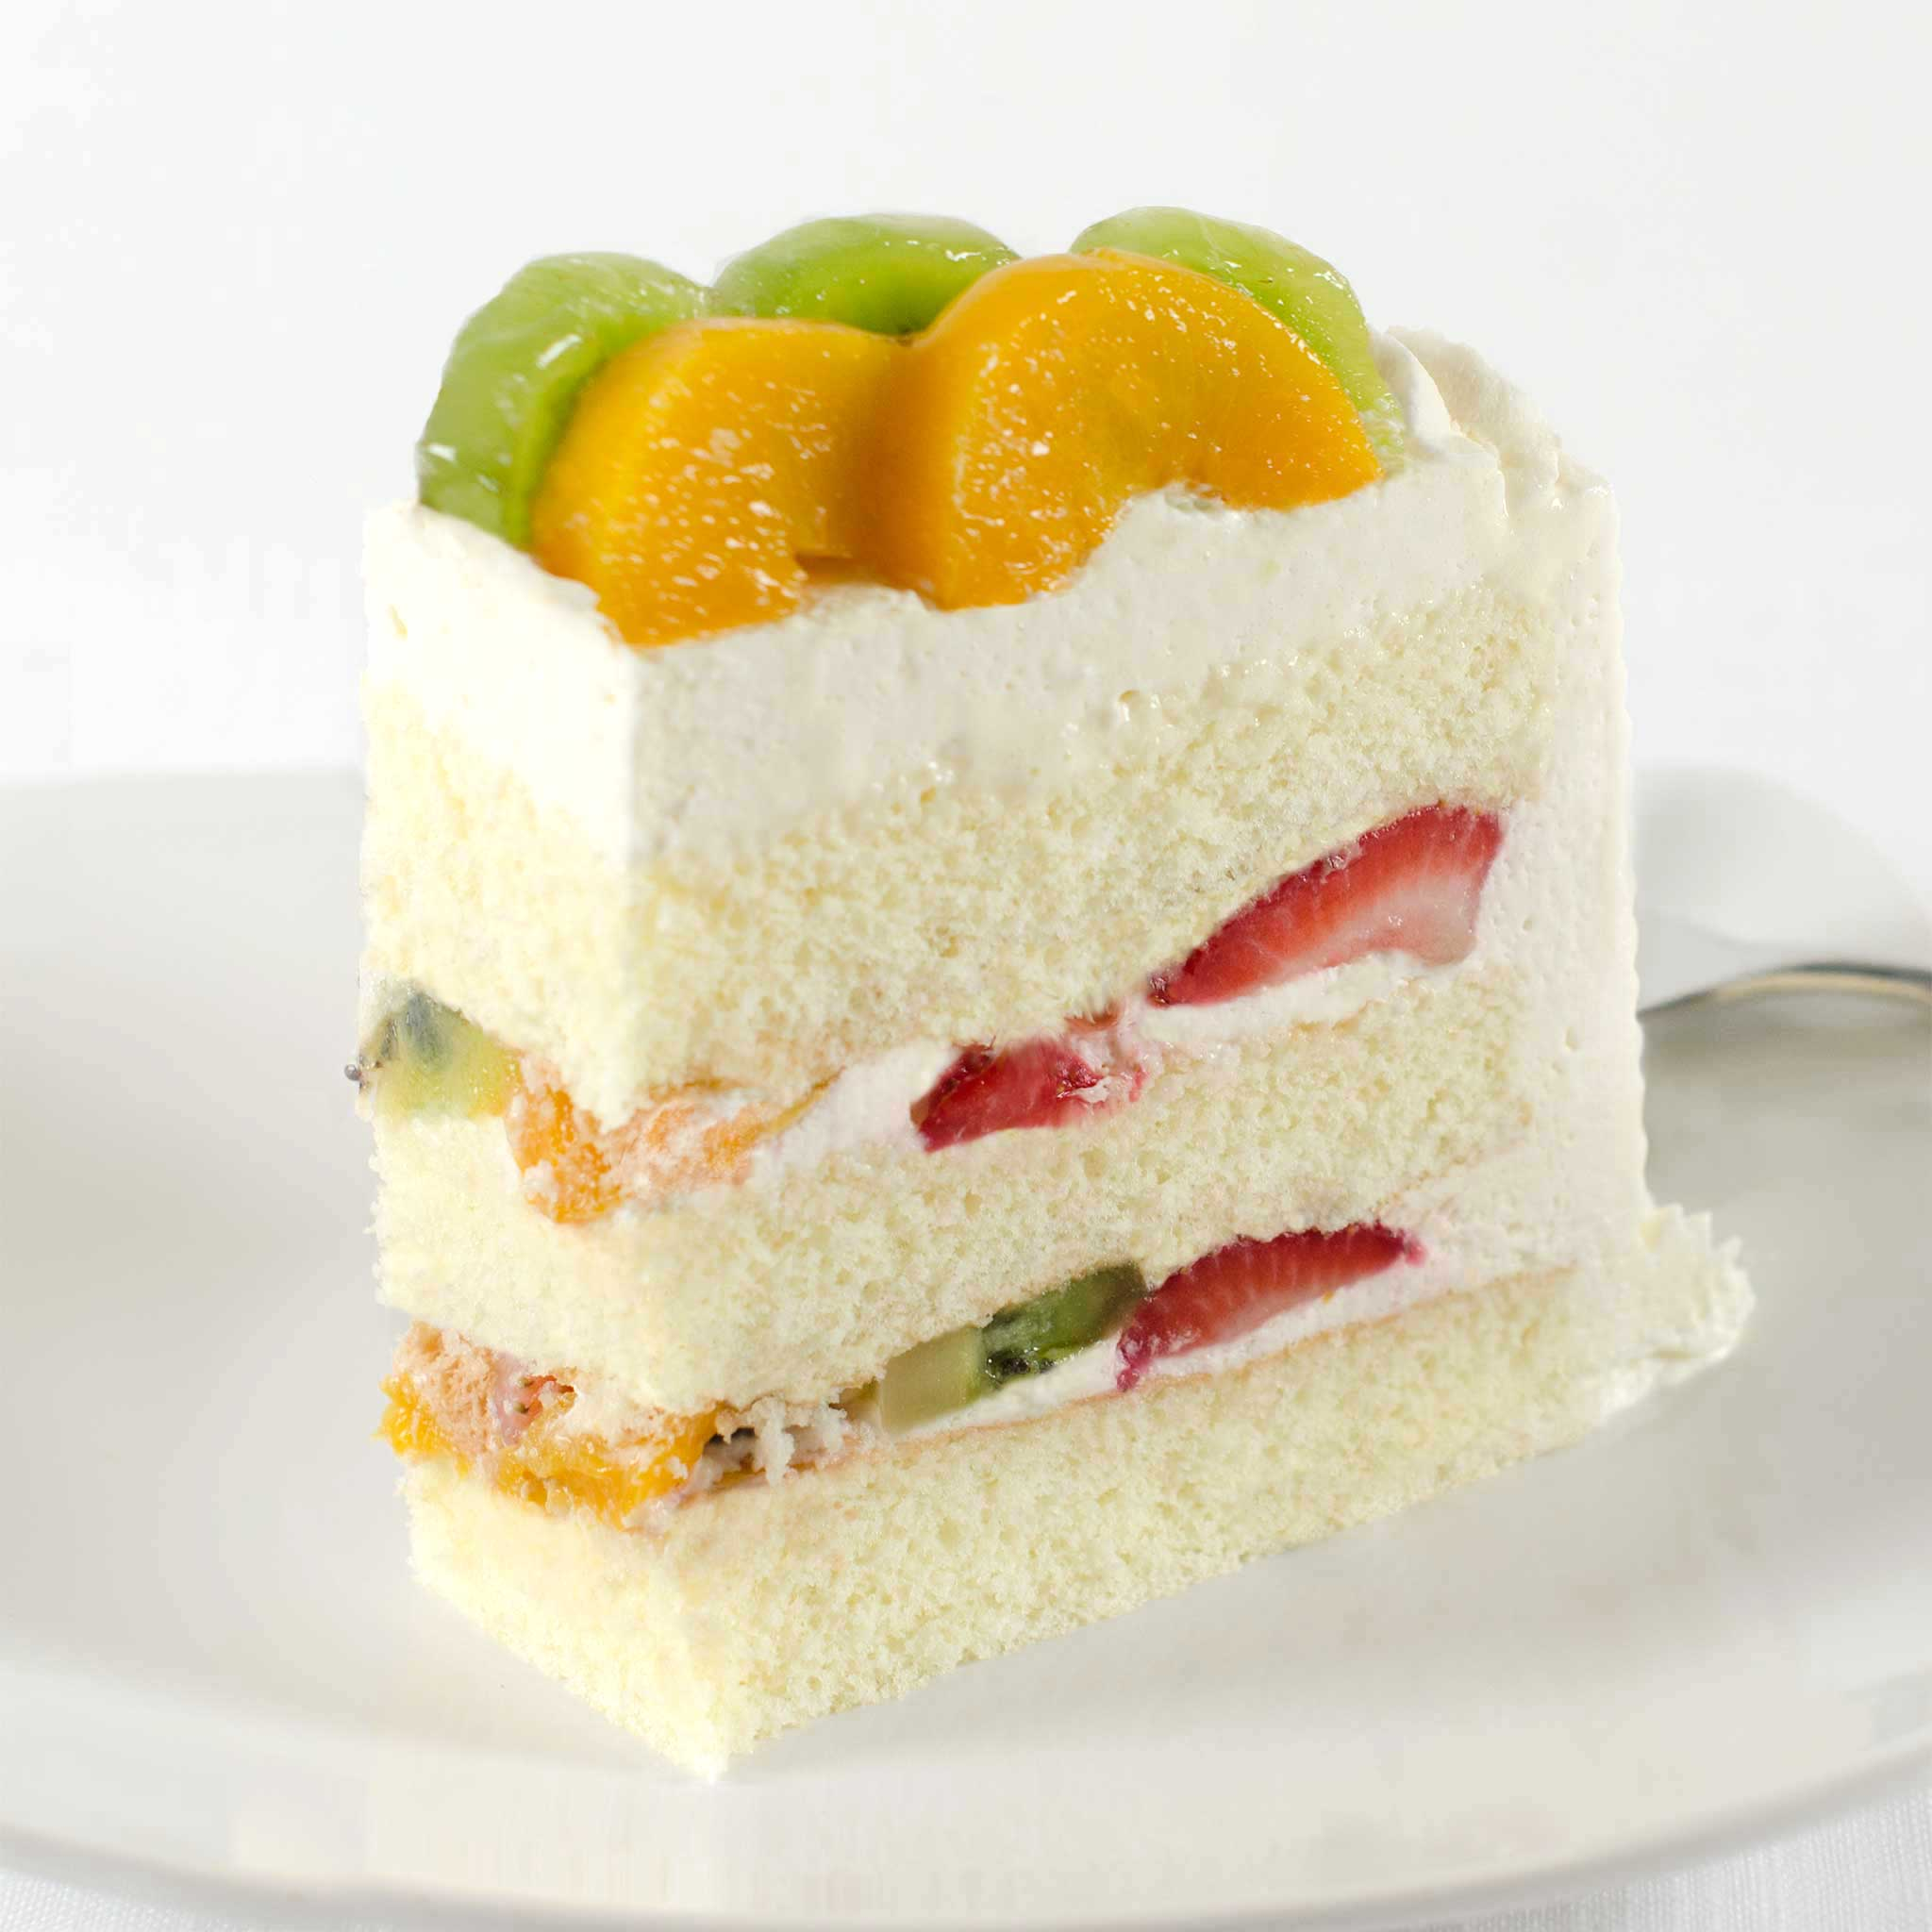 La Rocca Mixed Fruit Torte Celebration Cake - Slice